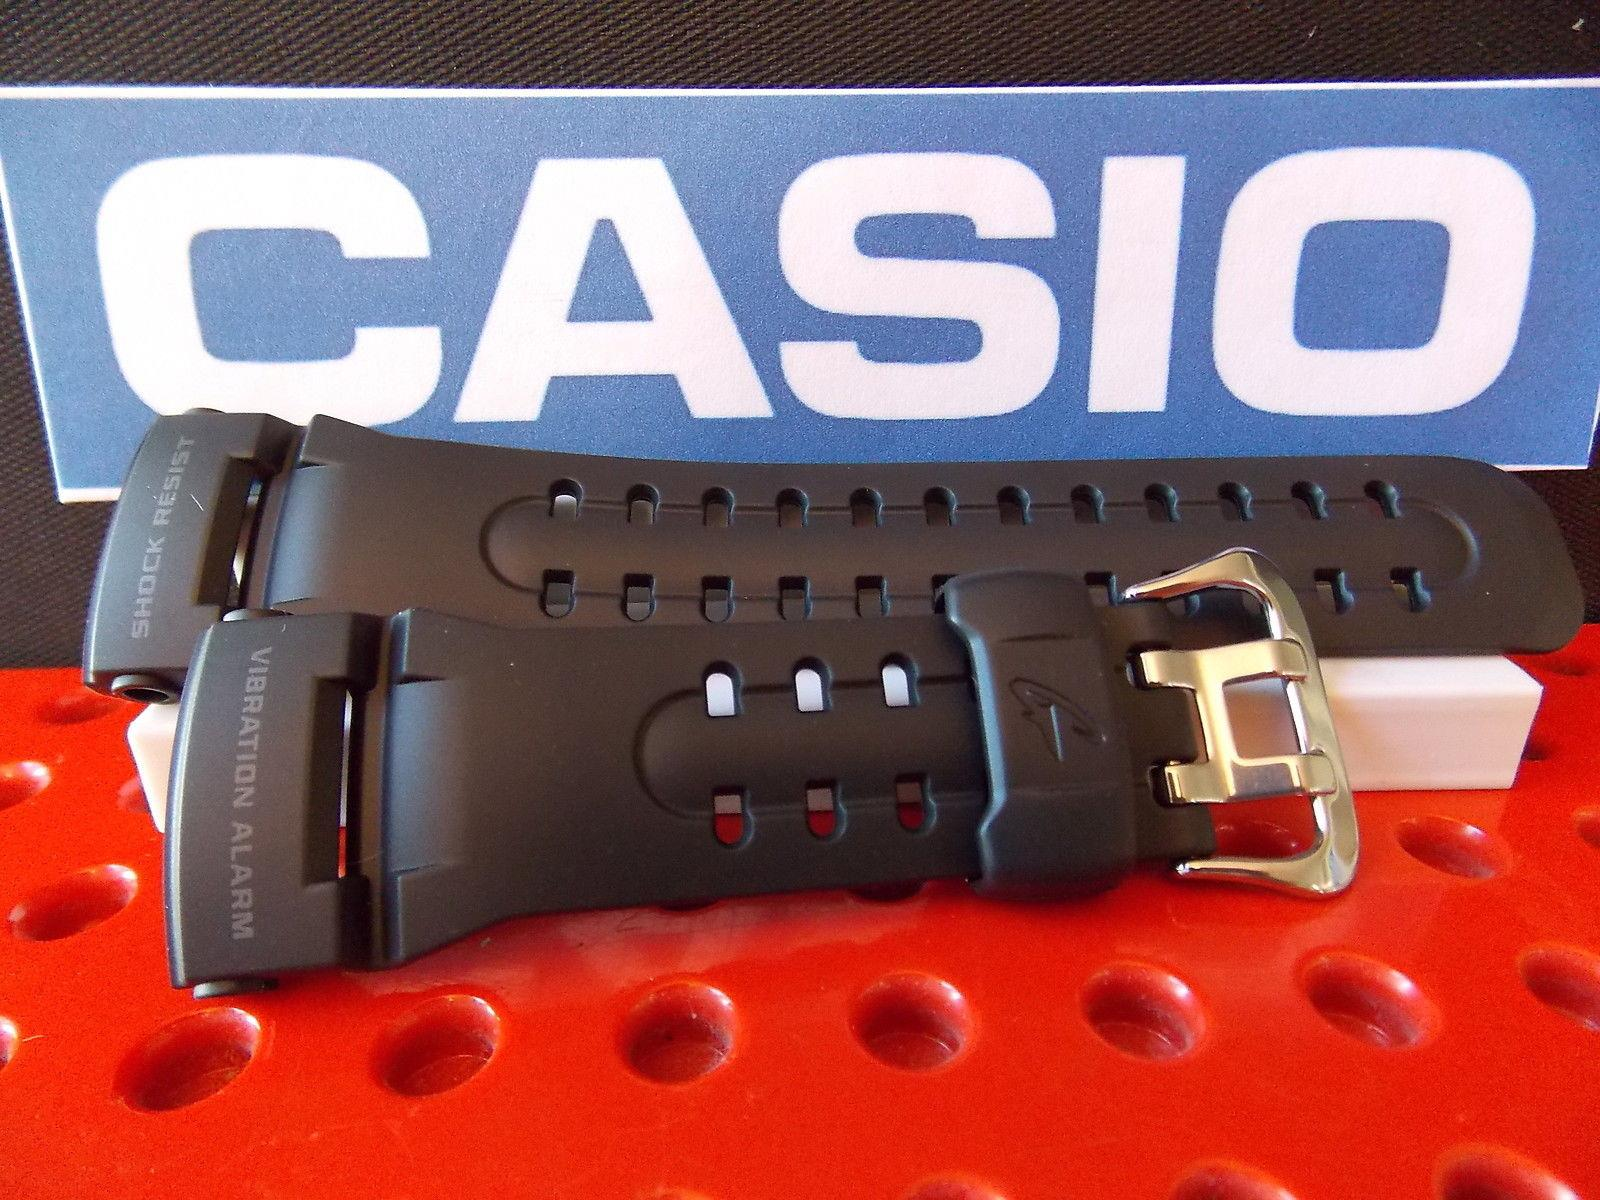 Casio watchband GW-400 J-1 Vibration Alarm Black Resin  Watchband